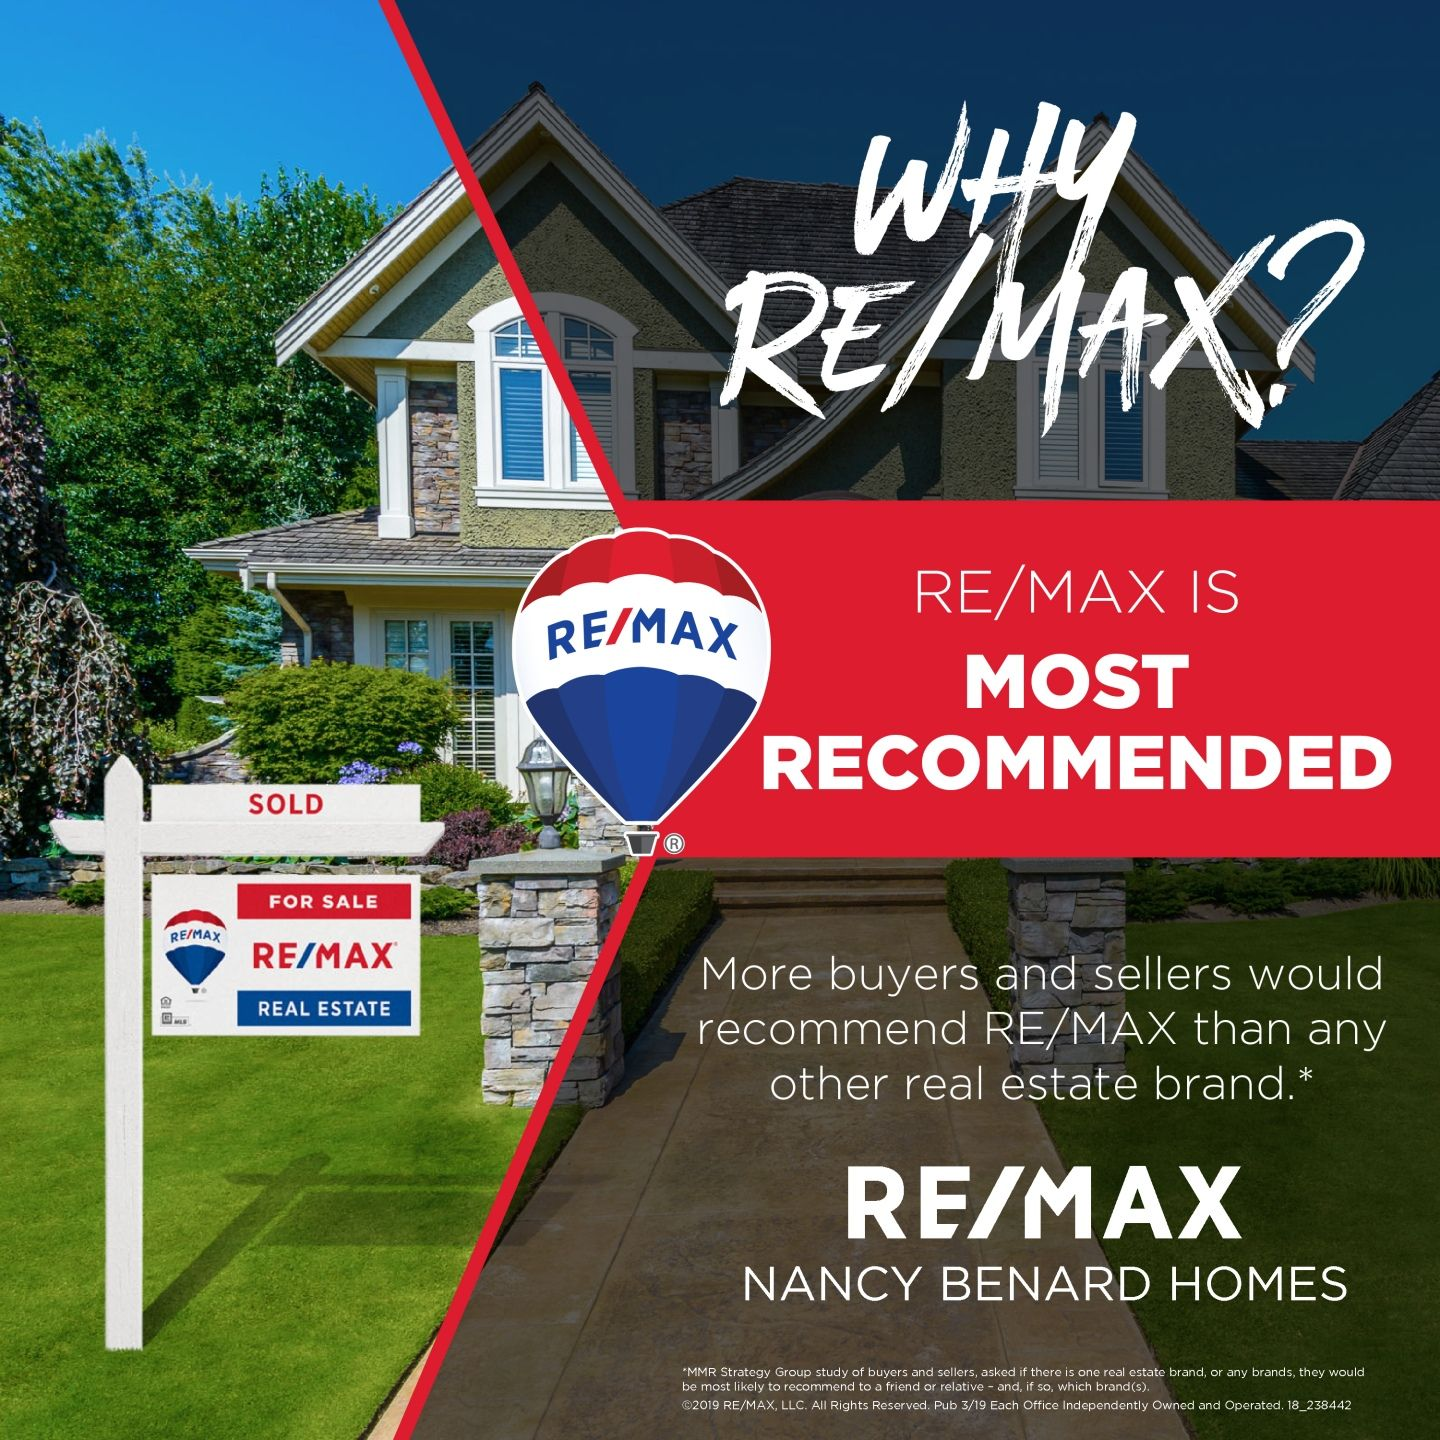 Call Me If You Are Looking For An Agent That Works For The Best Company In Real Estate 708 927 1014 Rema Remax Real Estate Remax Lead Generation Real Estate